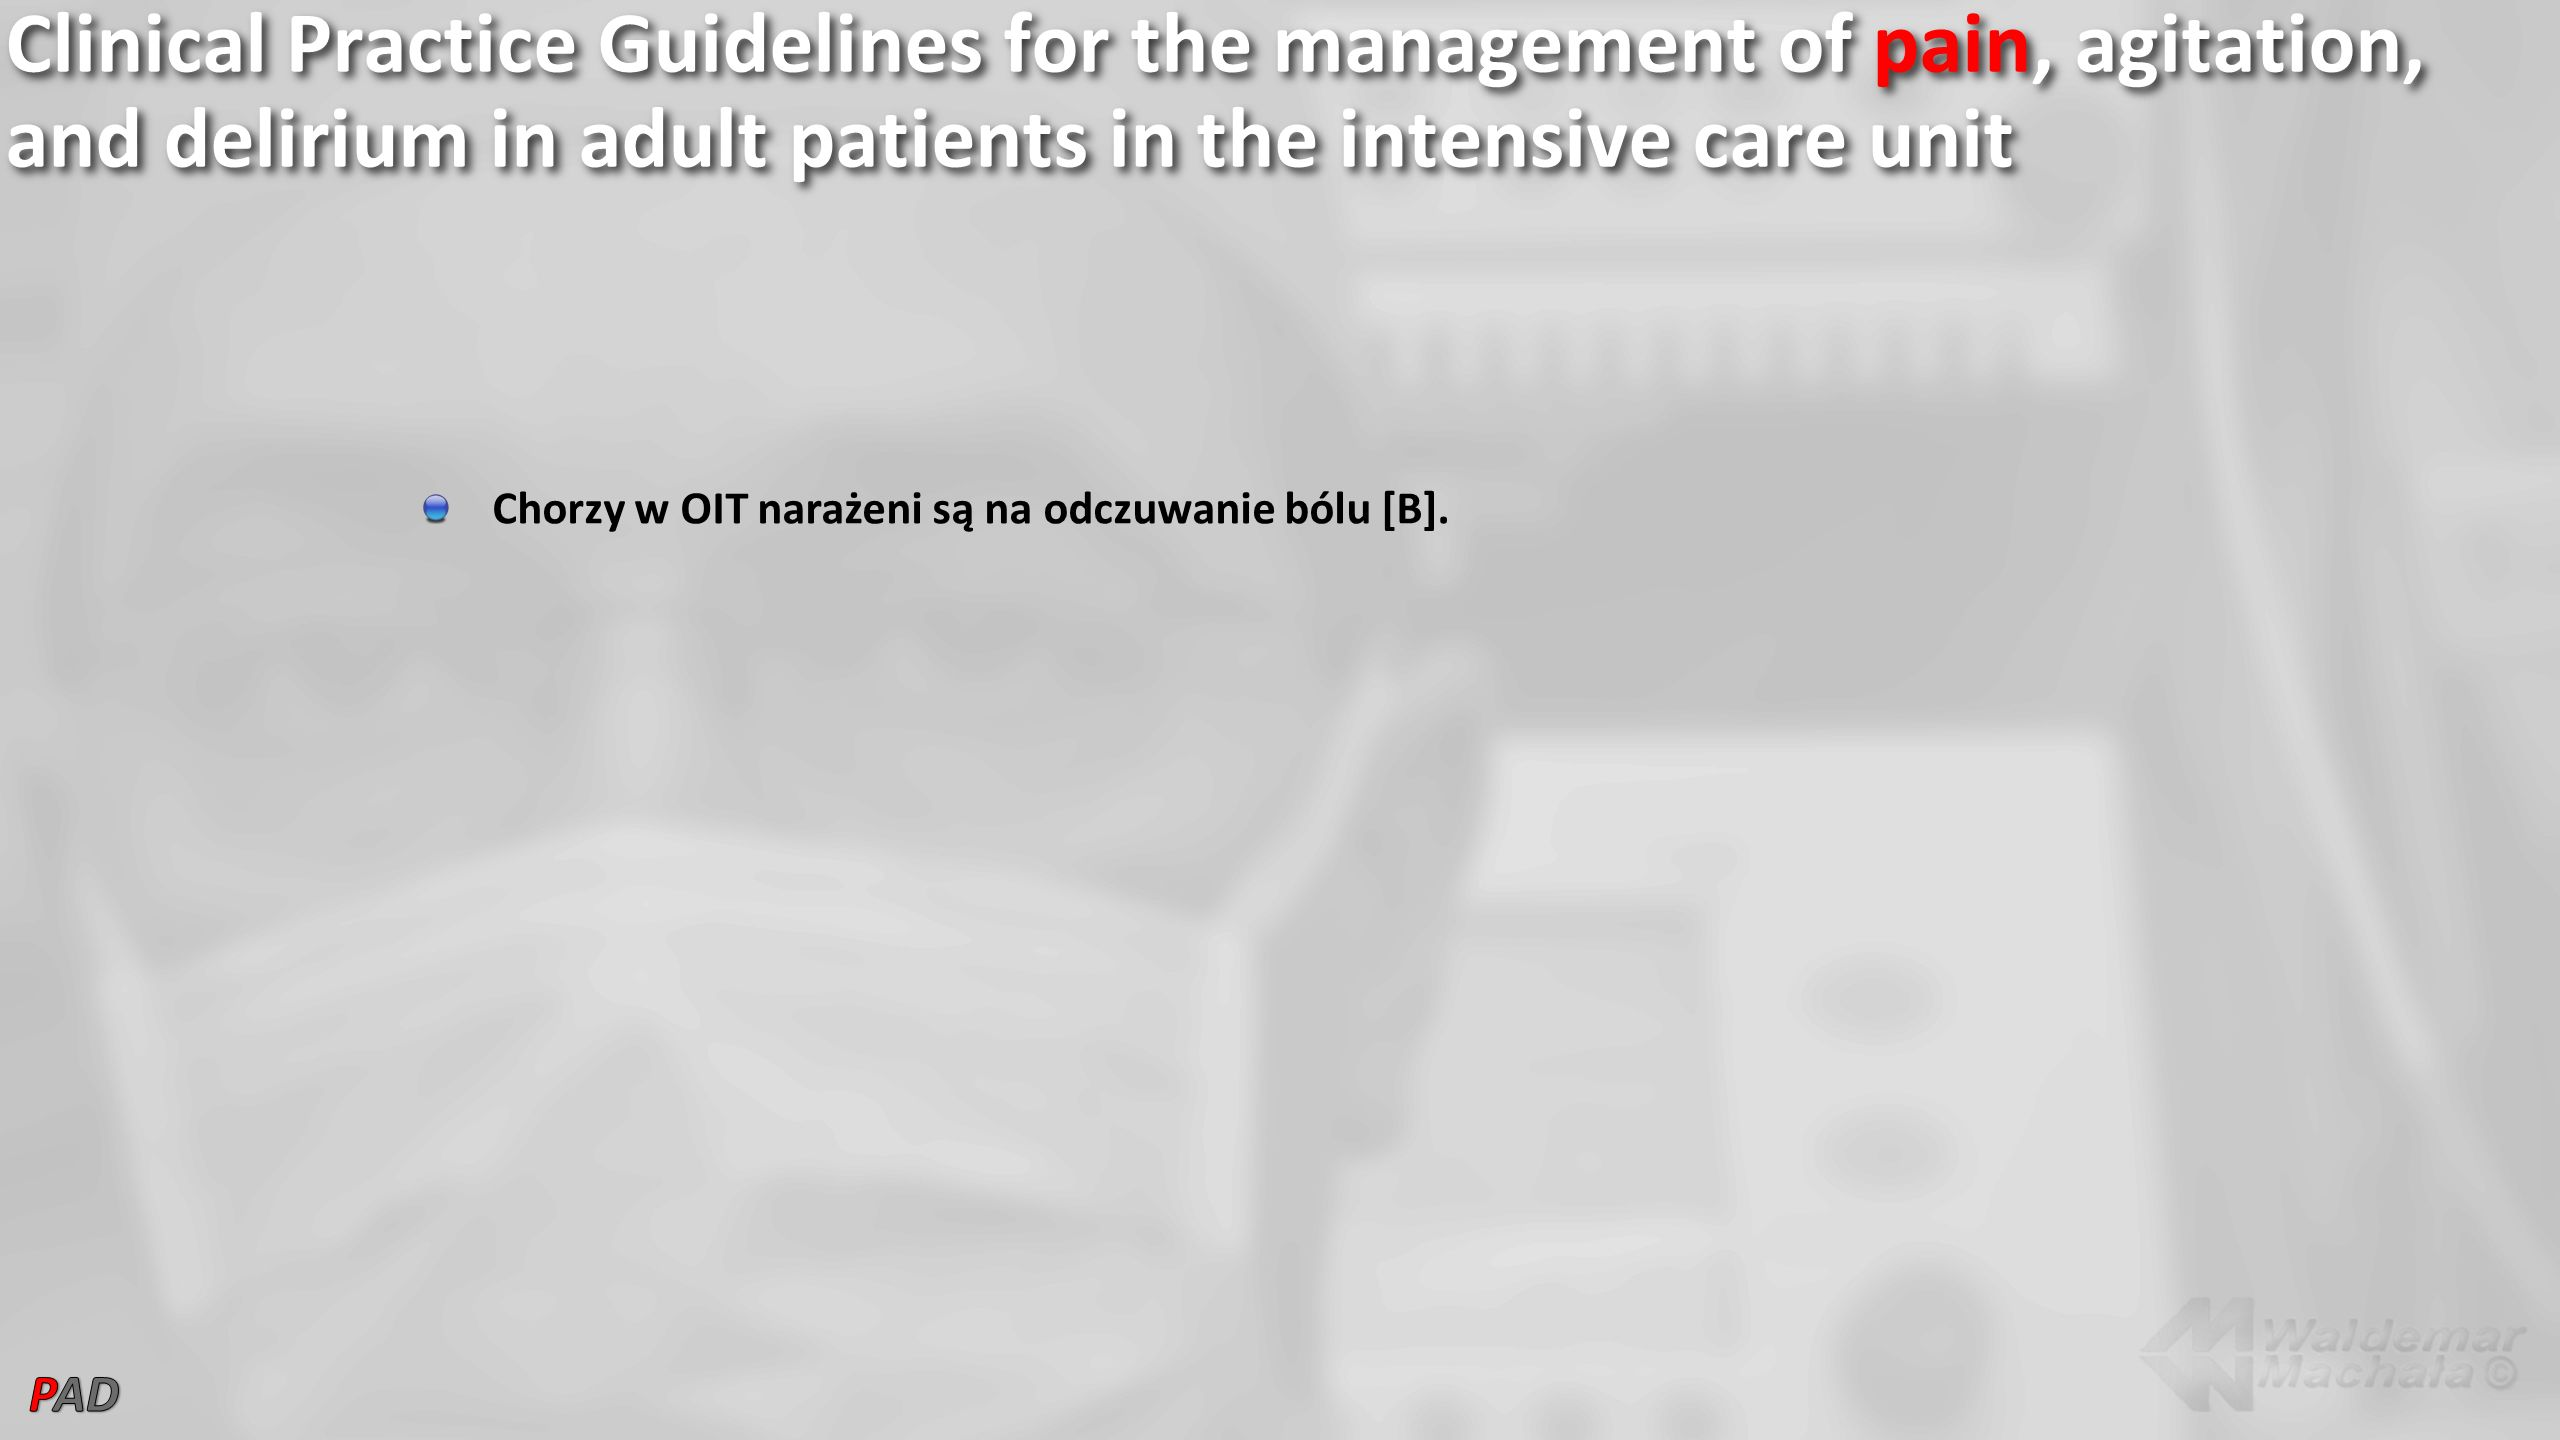 Clinical Practice Guidelines for the management of pain, agitation, and delirium in adult patients in the intensive care unit Chorzy w OIT narażeni są na odczuwanie bólu [B].